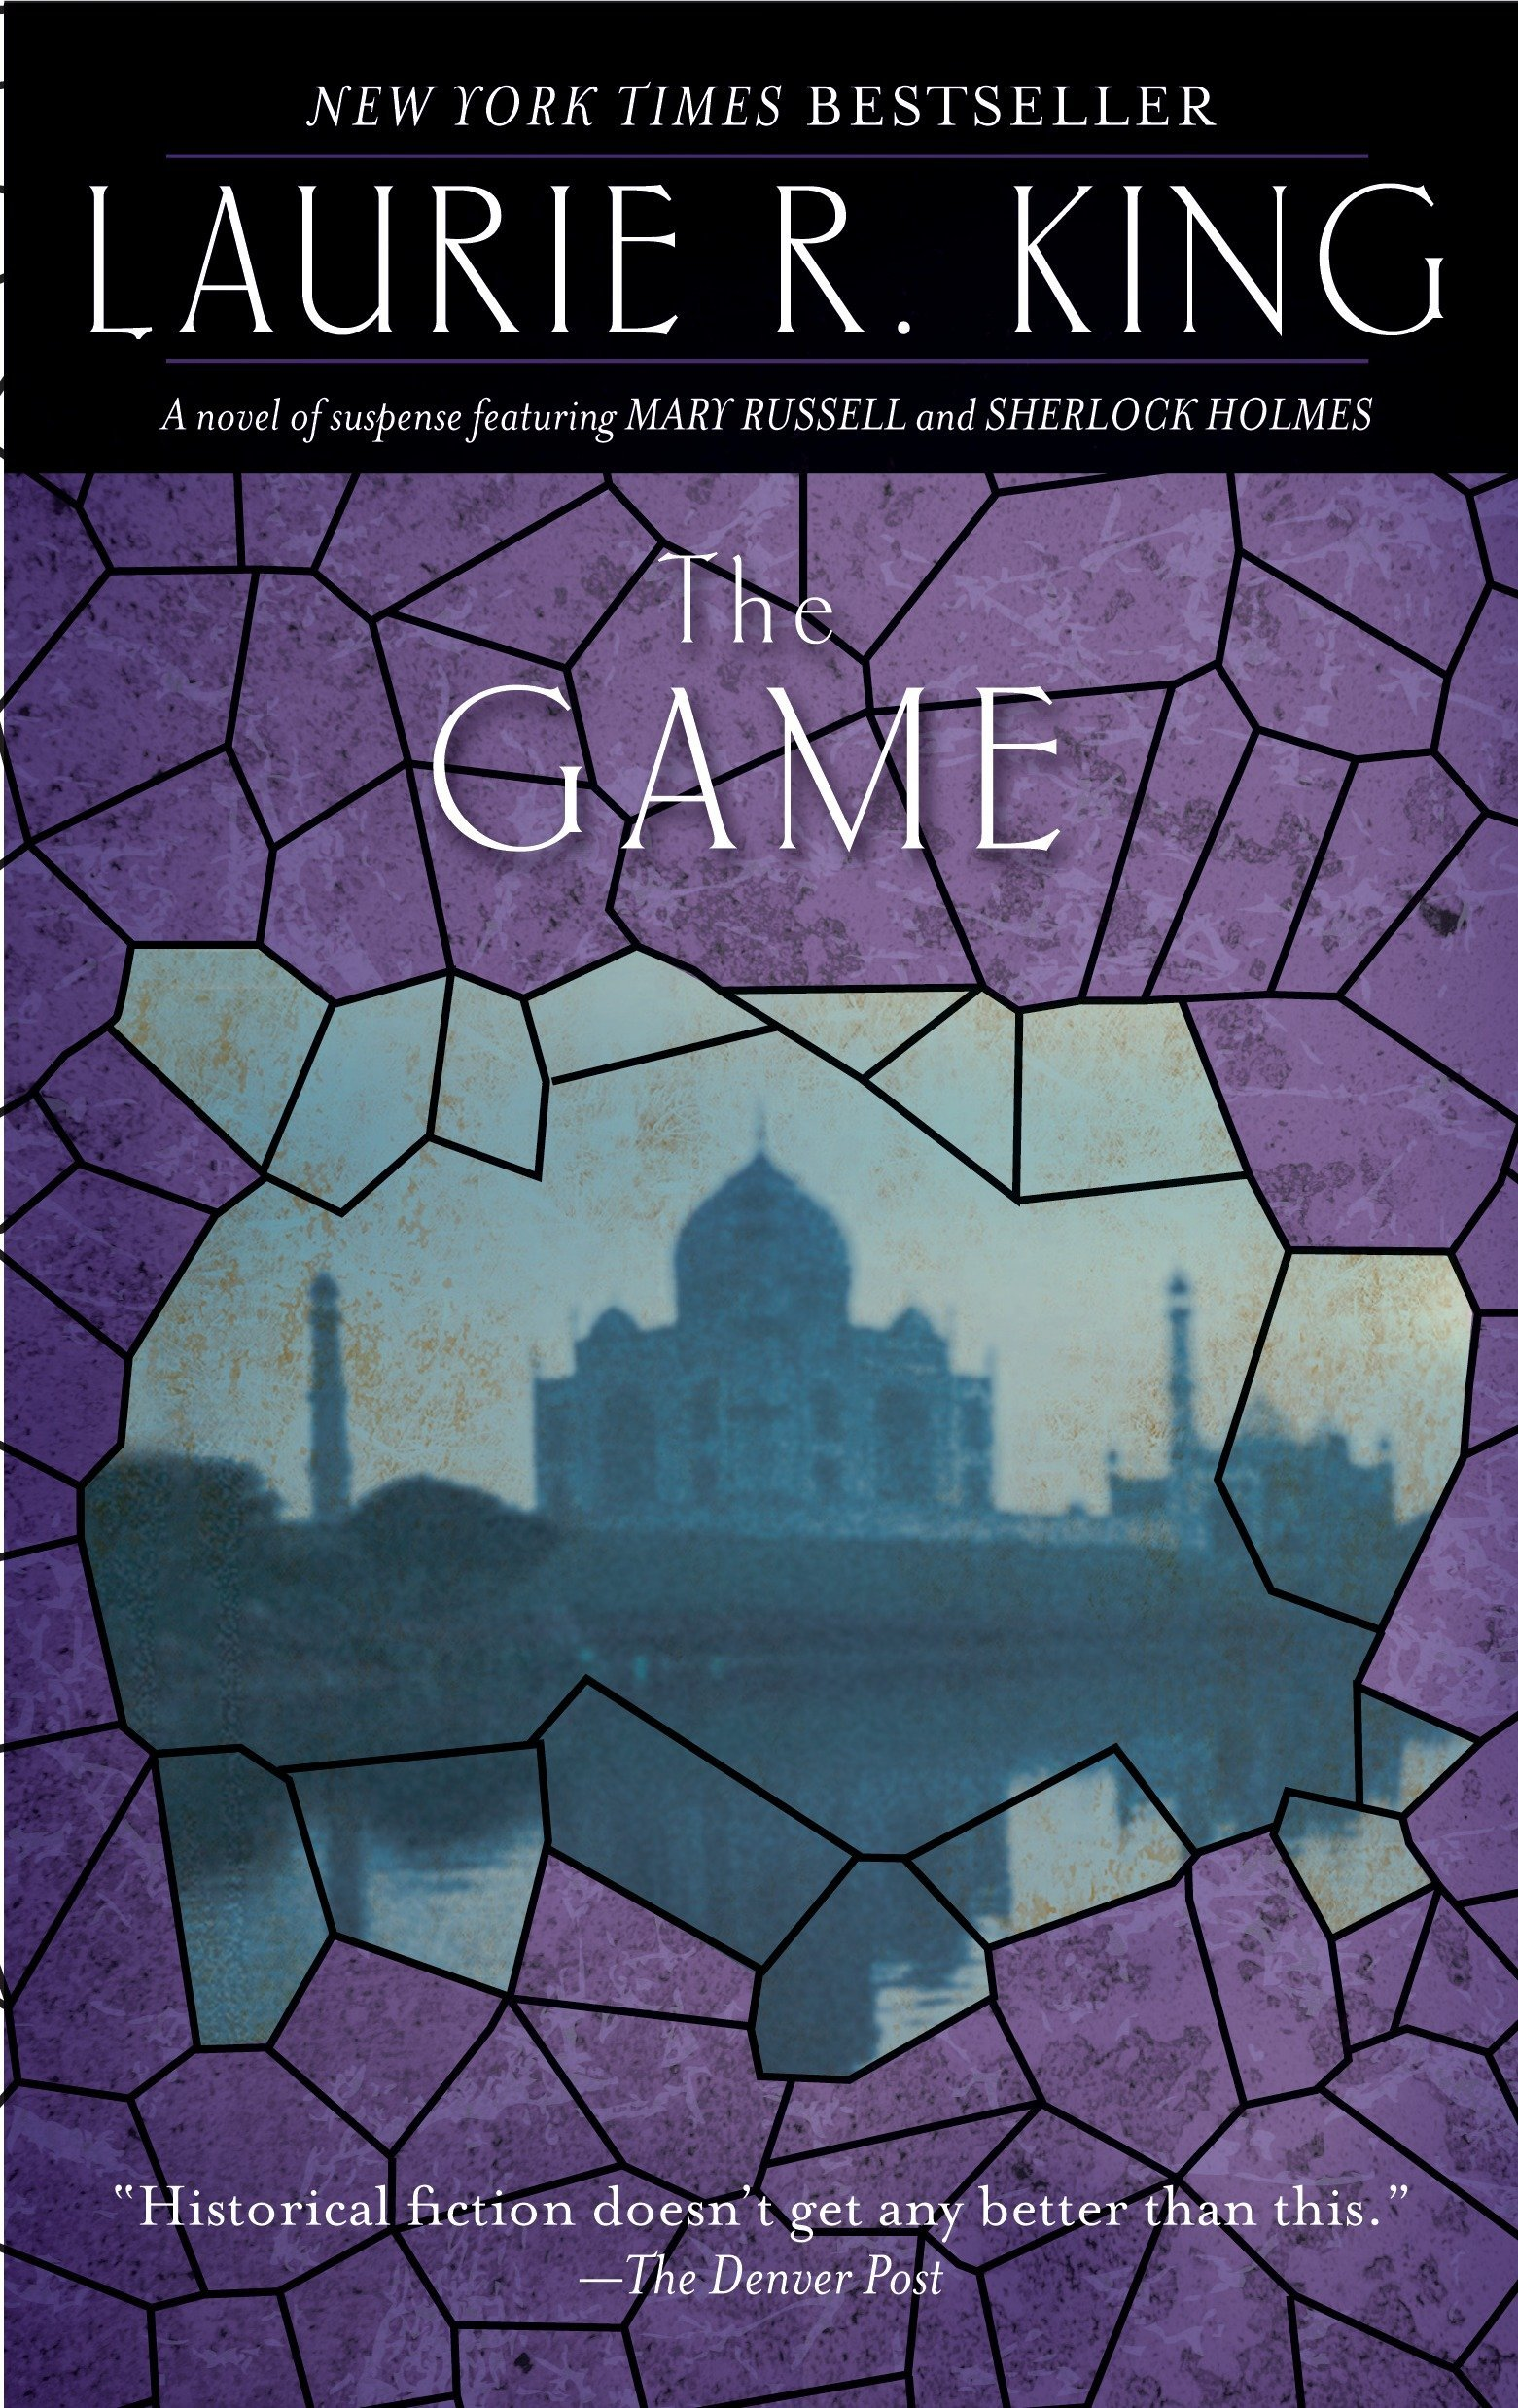 Amazon Com The Game A Novel Of Suspense Featuring Mary Russell And Sherlock Holmes 9780553386370 King Laurie R Books